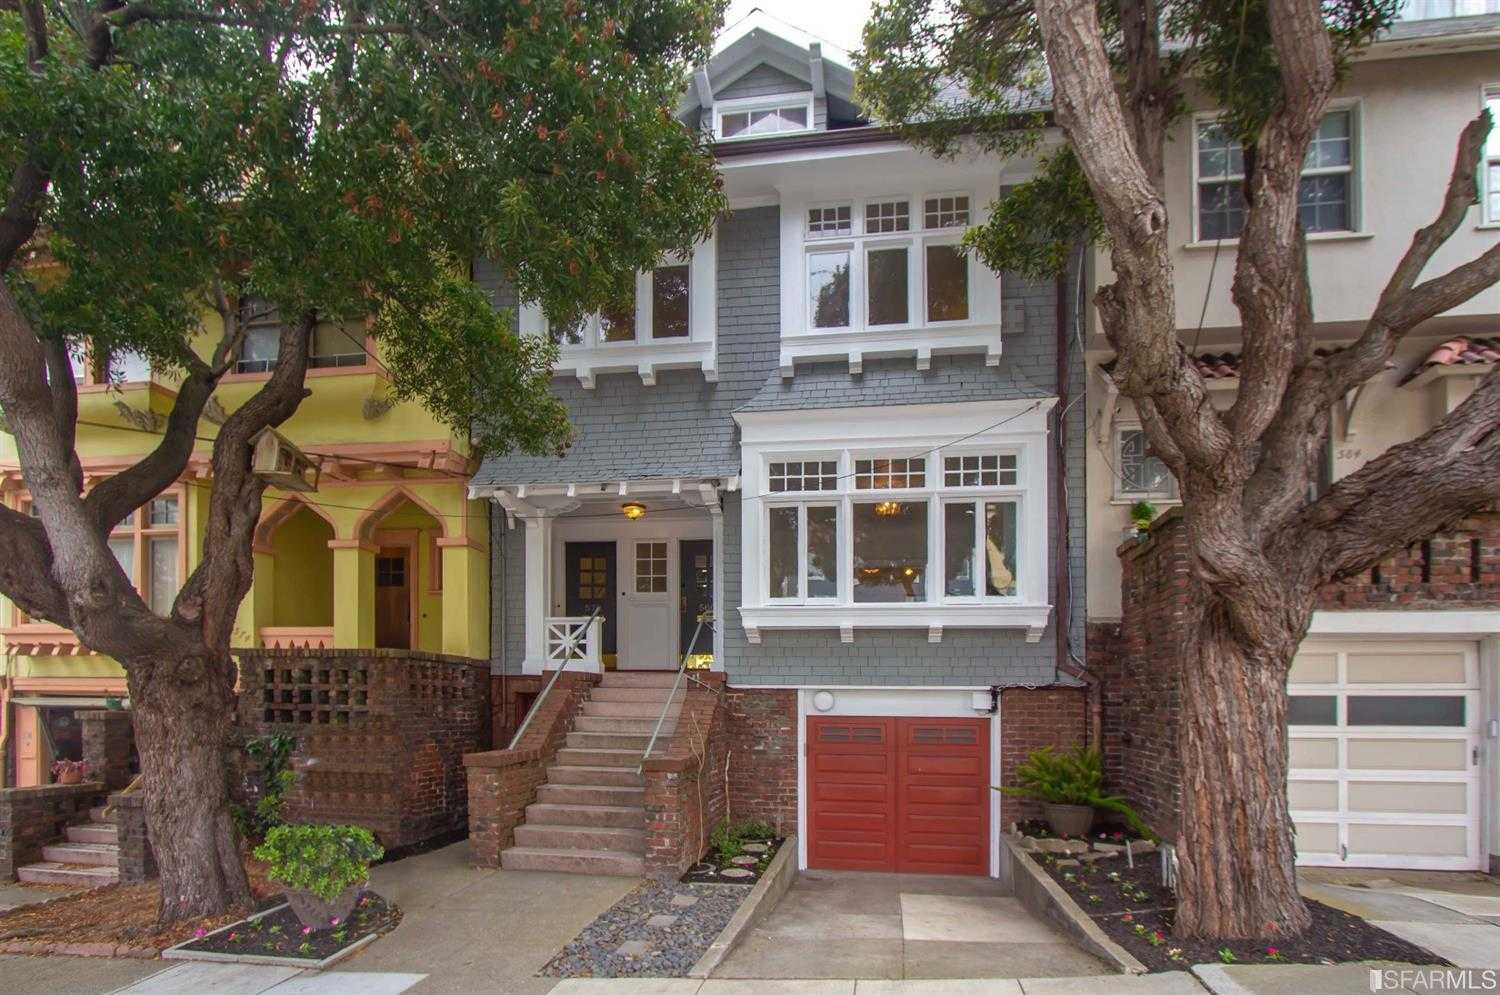 578 580 11th Avenue San Francisco, CA 94118